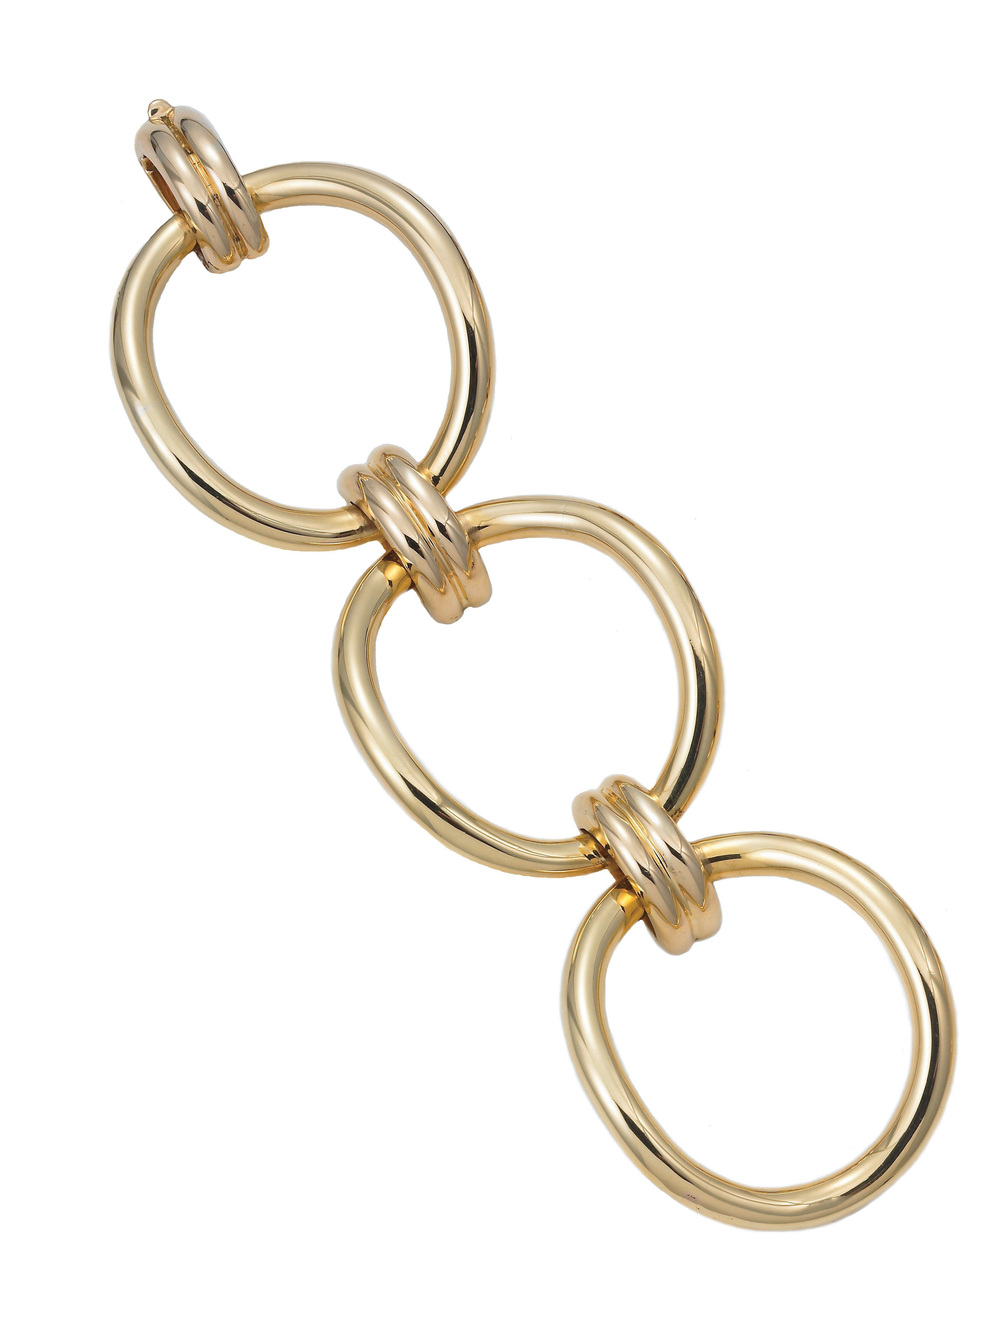 18KT yellow gold Signature bracelet with oval links. From the Meriwether   RETRO REDUX   line.